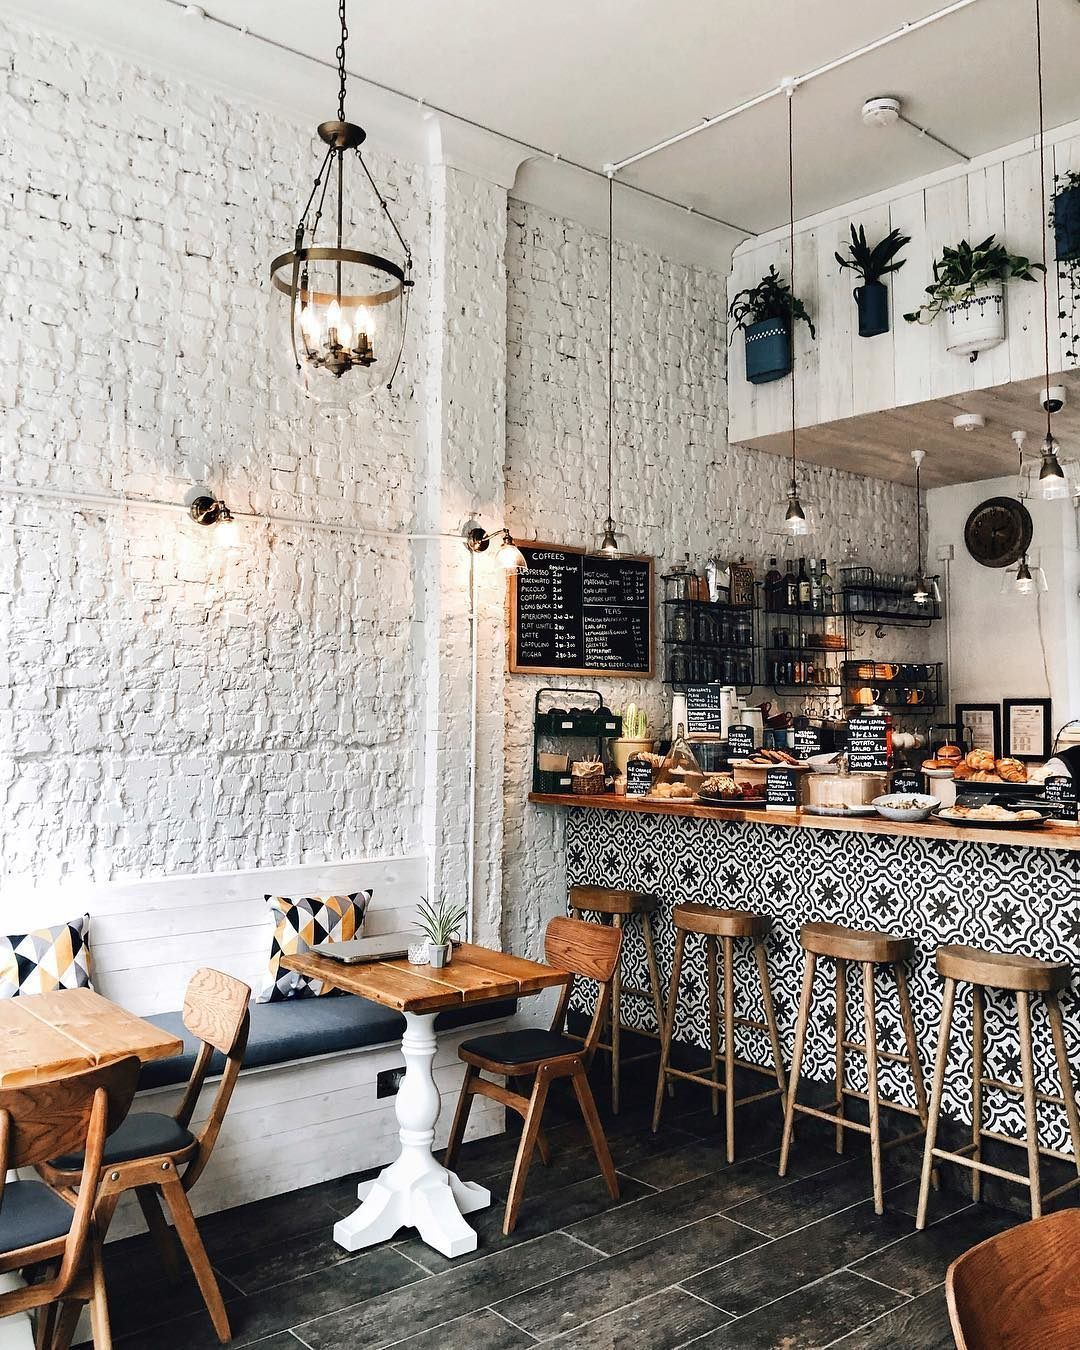 Secret London On Instagram This Cute New Cafe In Kensington Is An Instagrammer S Dream Pop In For Co Cafe Interior Design Cozy Coffee Shop Coffee Shop Decor